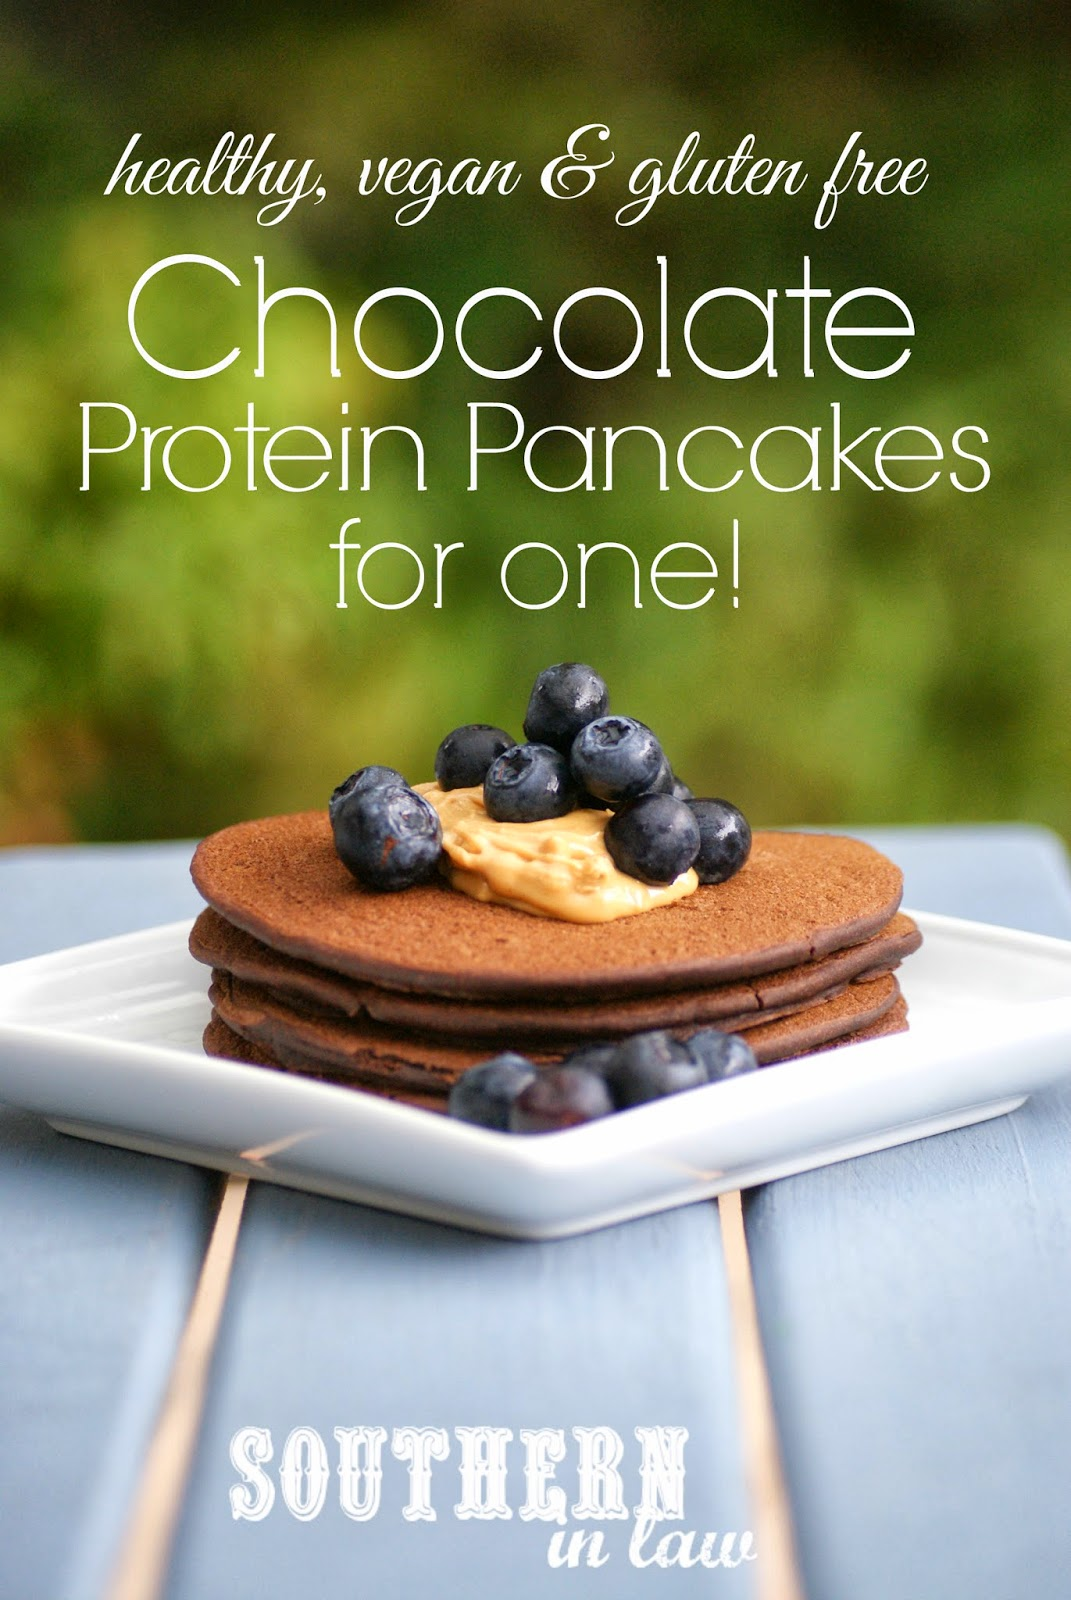 Vegan Chocolate Protein Pancakes for One - Healthy, Gluten Free, Sugar Free Recipe